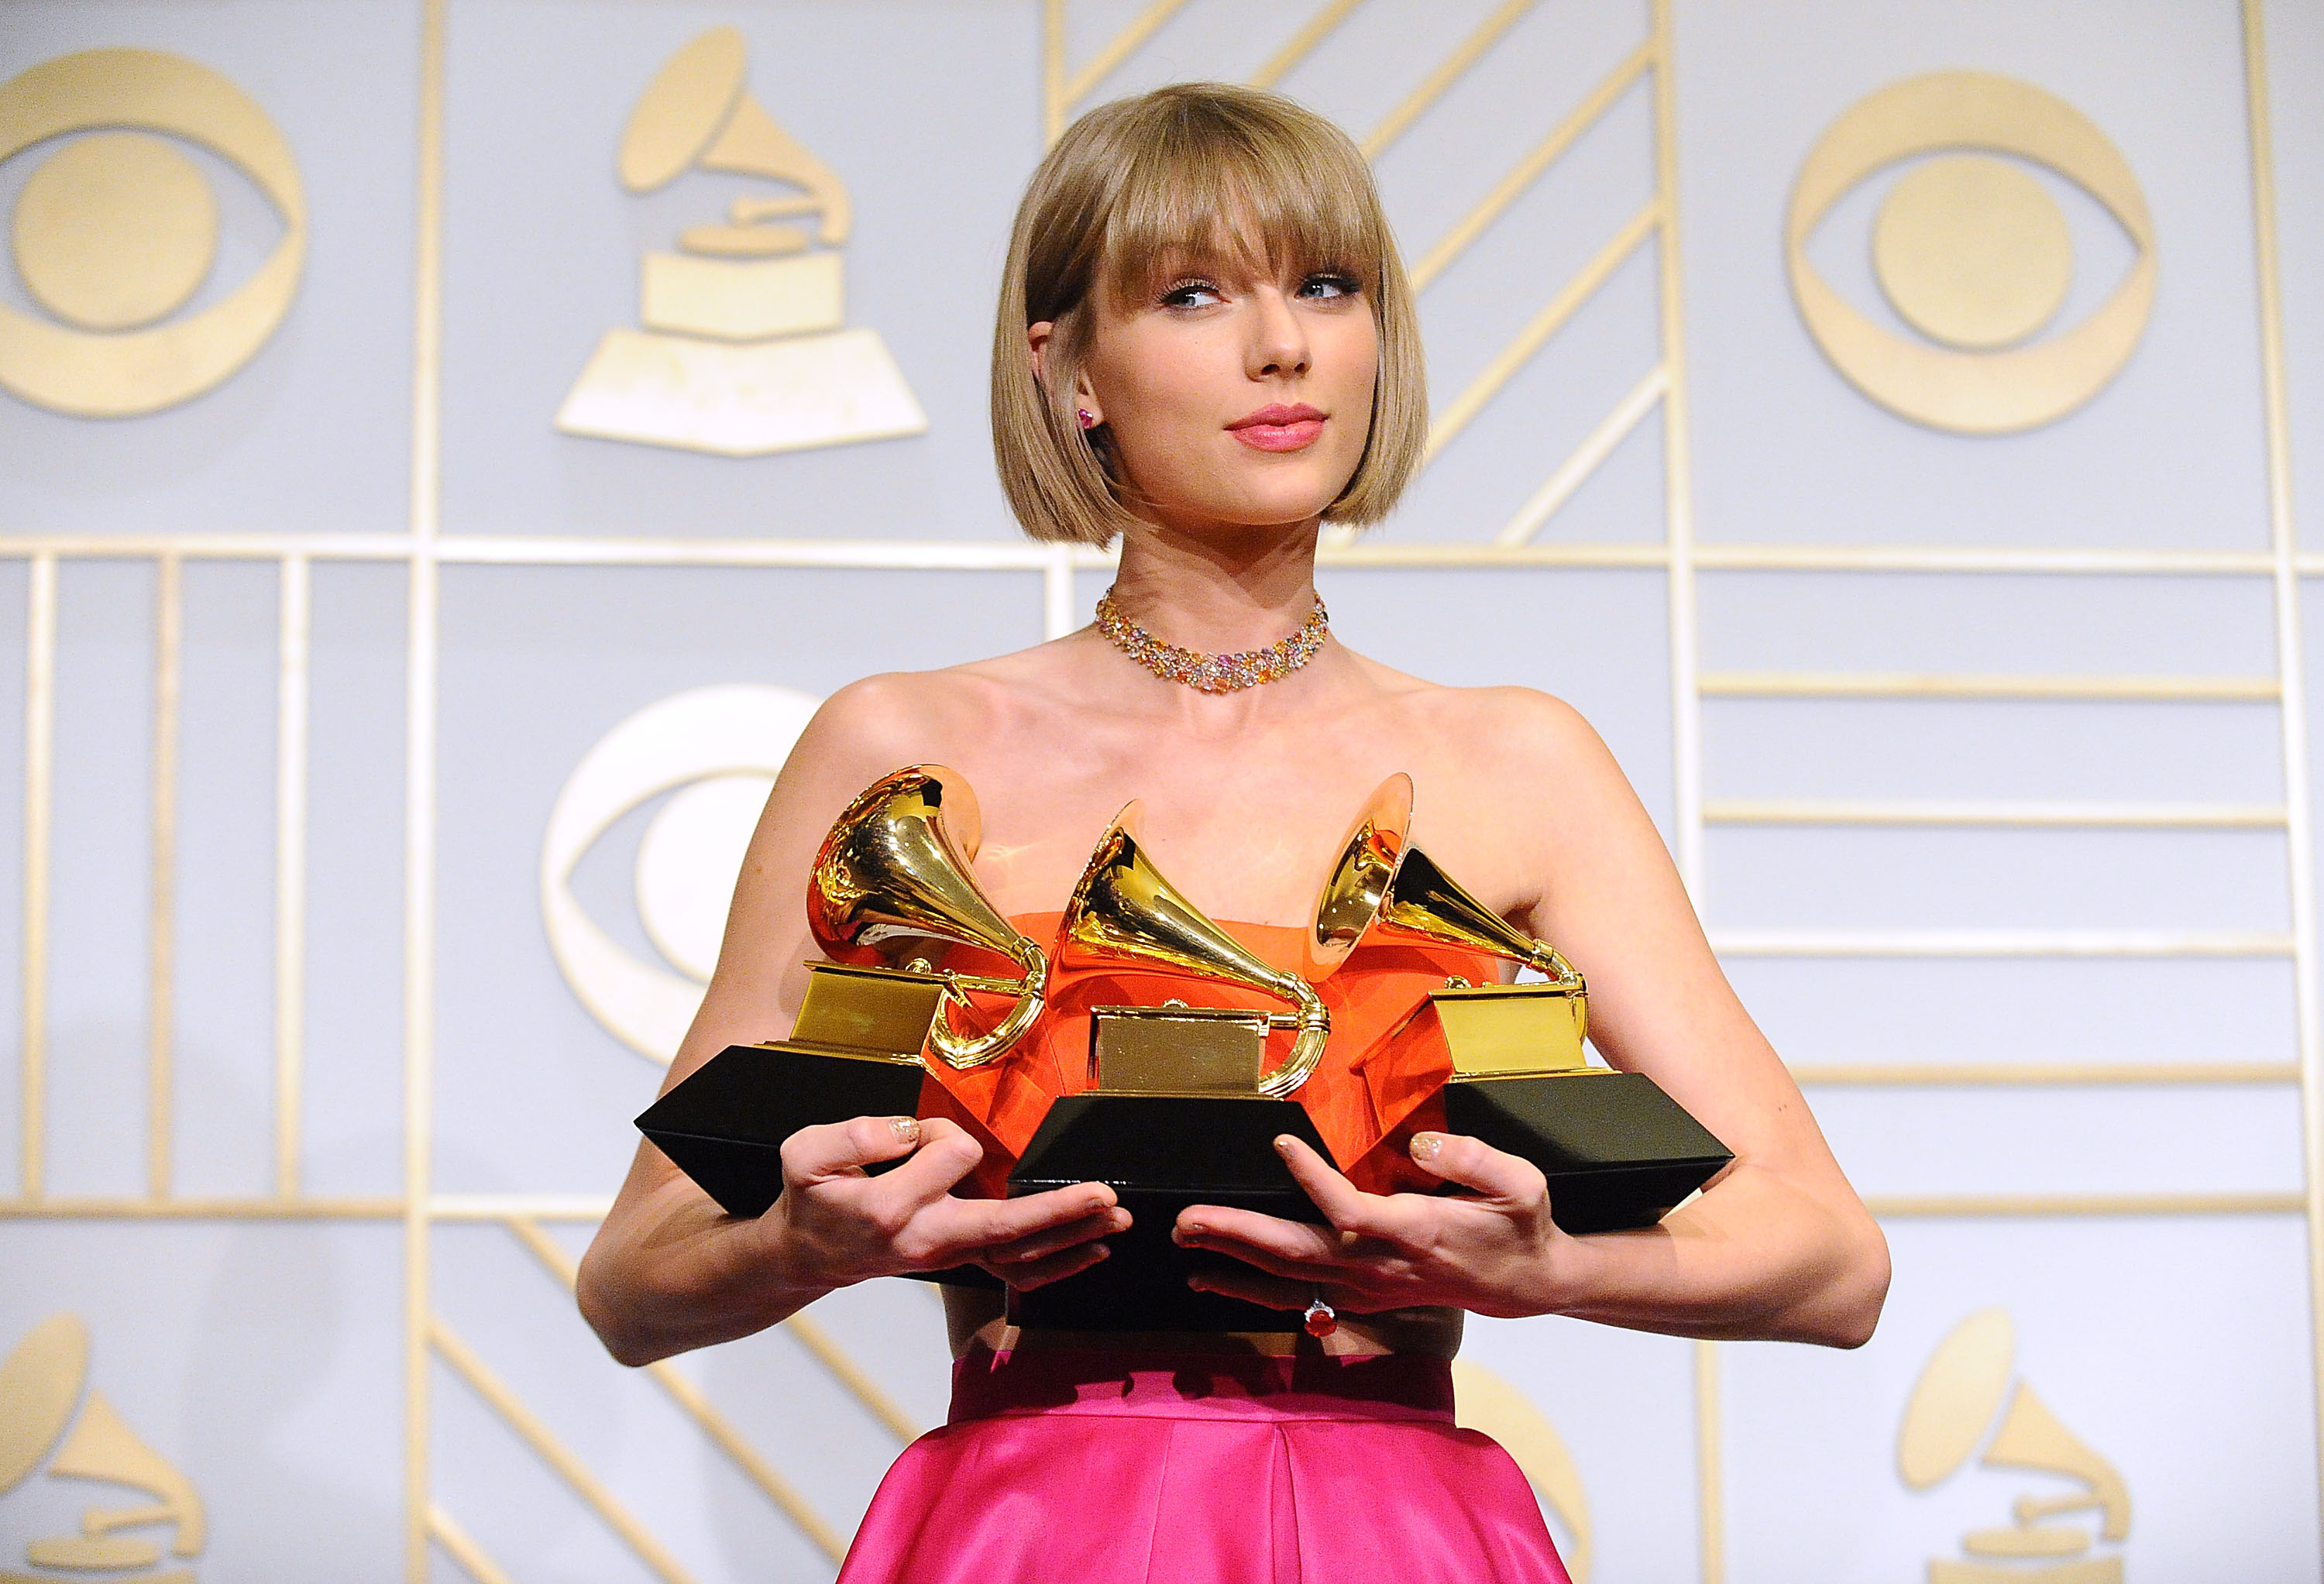 Recording artist Taylor Swift at the 58th Annual Grammy Awards on February 15, 2016, at the Staples Center in Los Angeles, California.